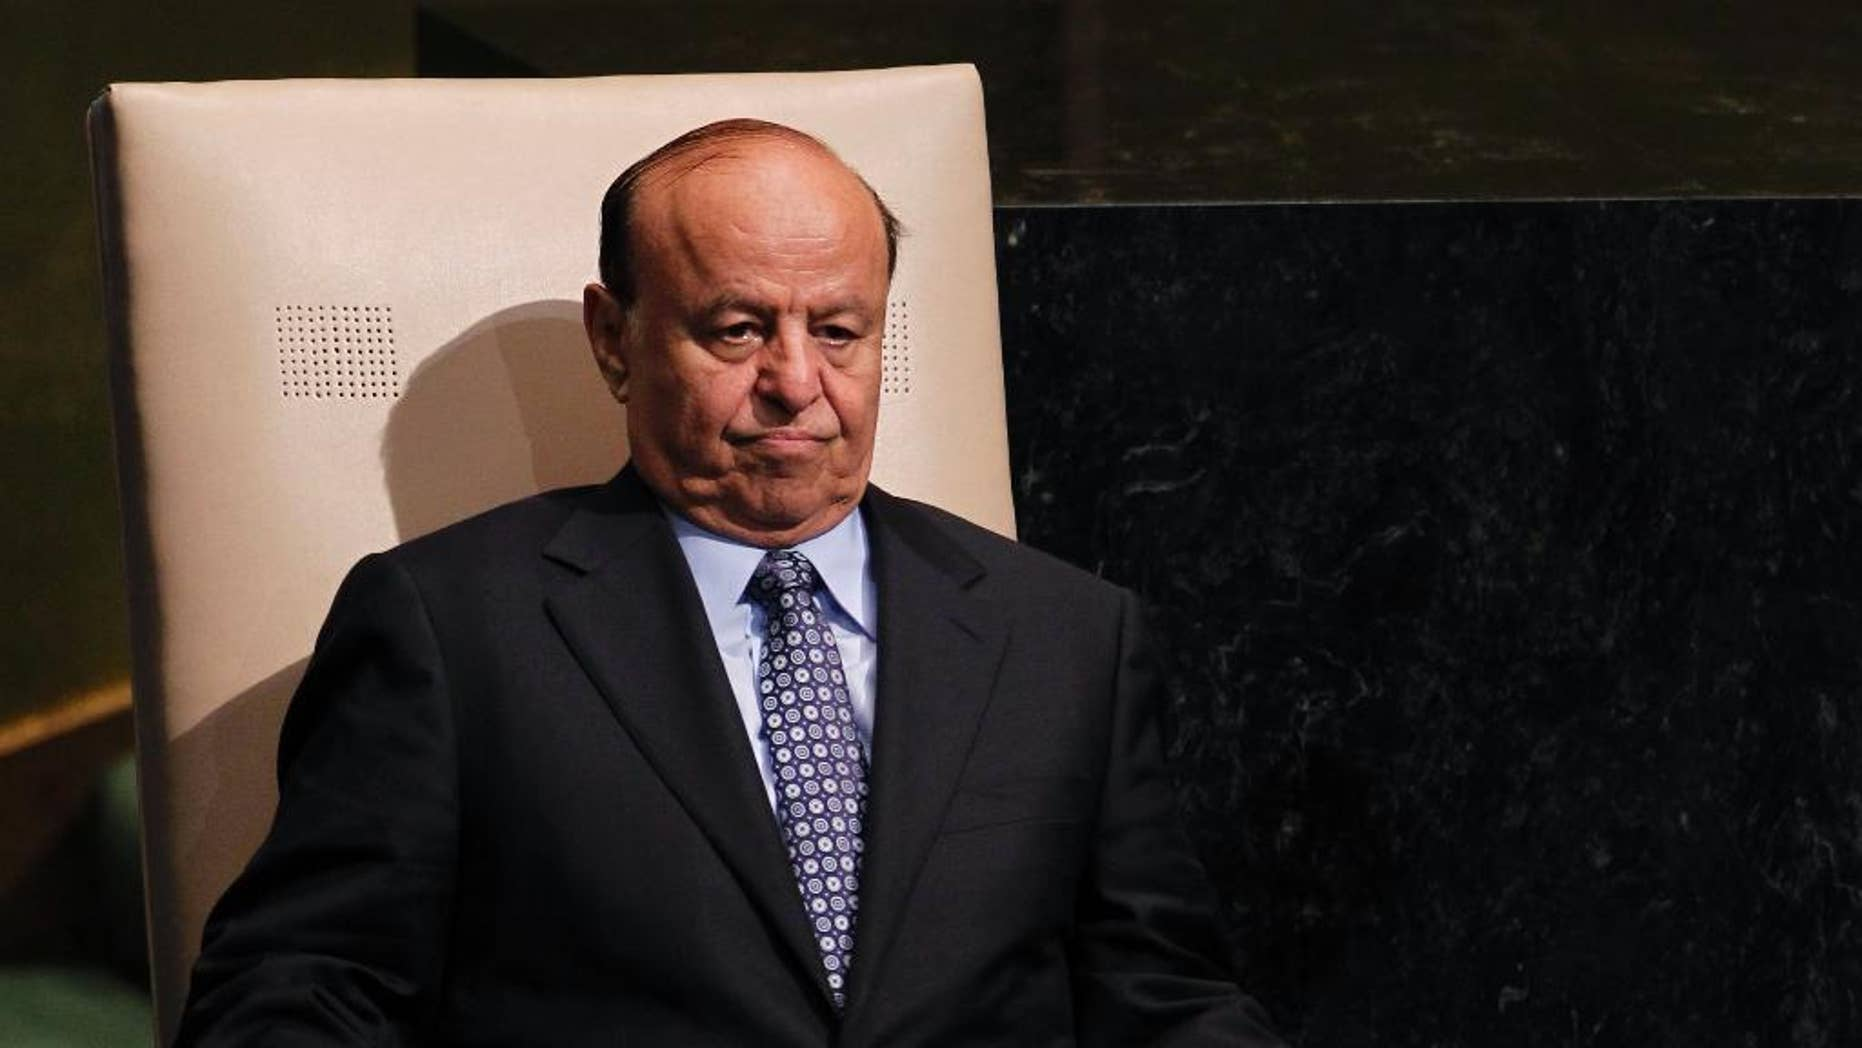 FILE - In this Wednesday, Sept. 26, 2012 file photo, Abed Rabbo Mansour Hadi, President of Yemen, sits after addressing the 67th session of the United Nations General Assembly at U.N. headquarters. Yemen's embattled president fled his palace in Aden for an undisclosed location Wednesday as Shiite rebels offered cash bounty for his capture and arrested his defense minister. Hadi left just hours after the rebels' own television station said they seized an air base where U.S. troops and Europeans advised the country in its fight against al-Qaida militants.  (AP Photo/Jason DeCrow, File)